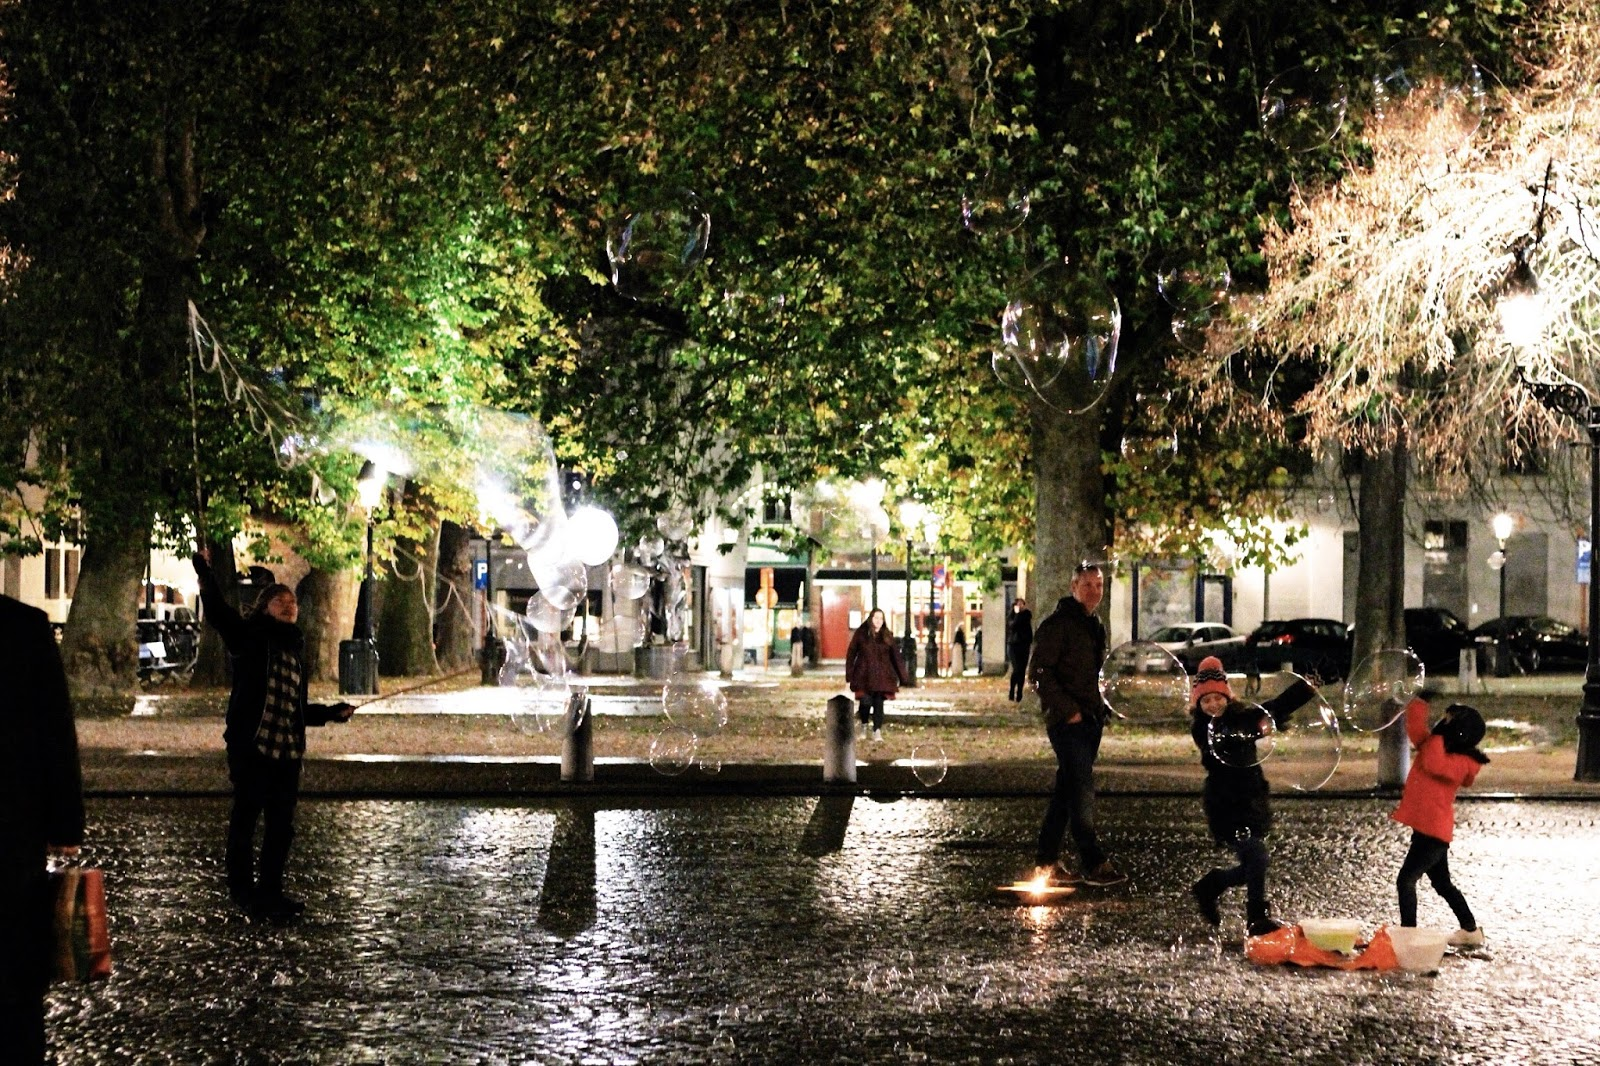 Children playing with bubbles on a rainy night in Bruges